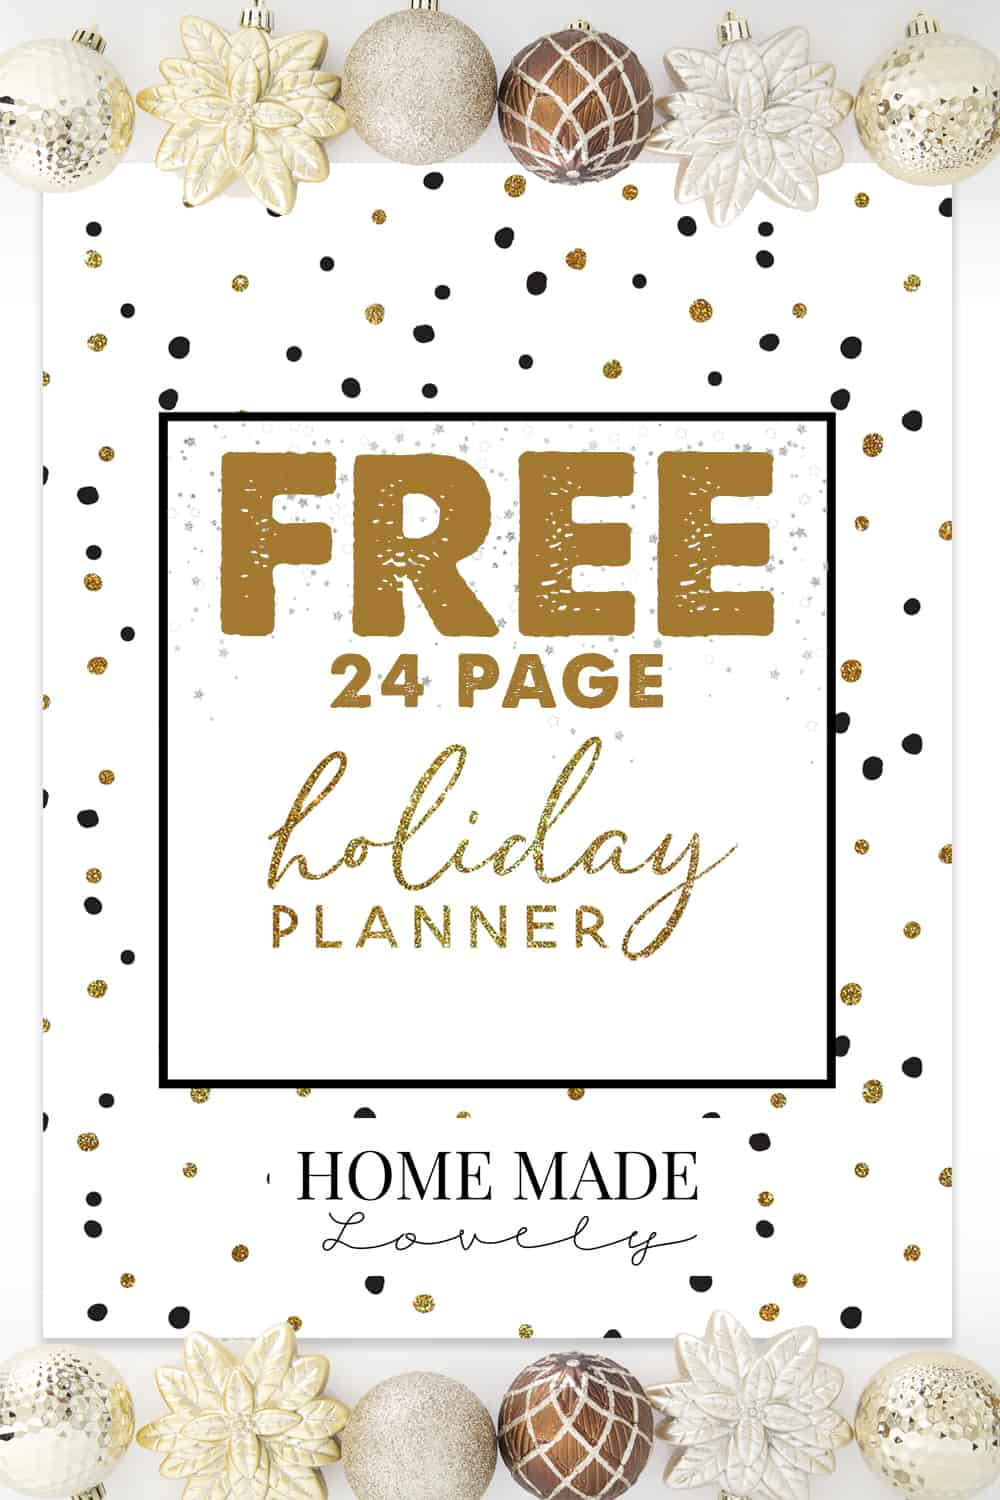 photograph regarding Free Printable Christmas Planner identify Absolutely free Getaway Planner Pack - 23 Totally free Printable Webpages in direction of System